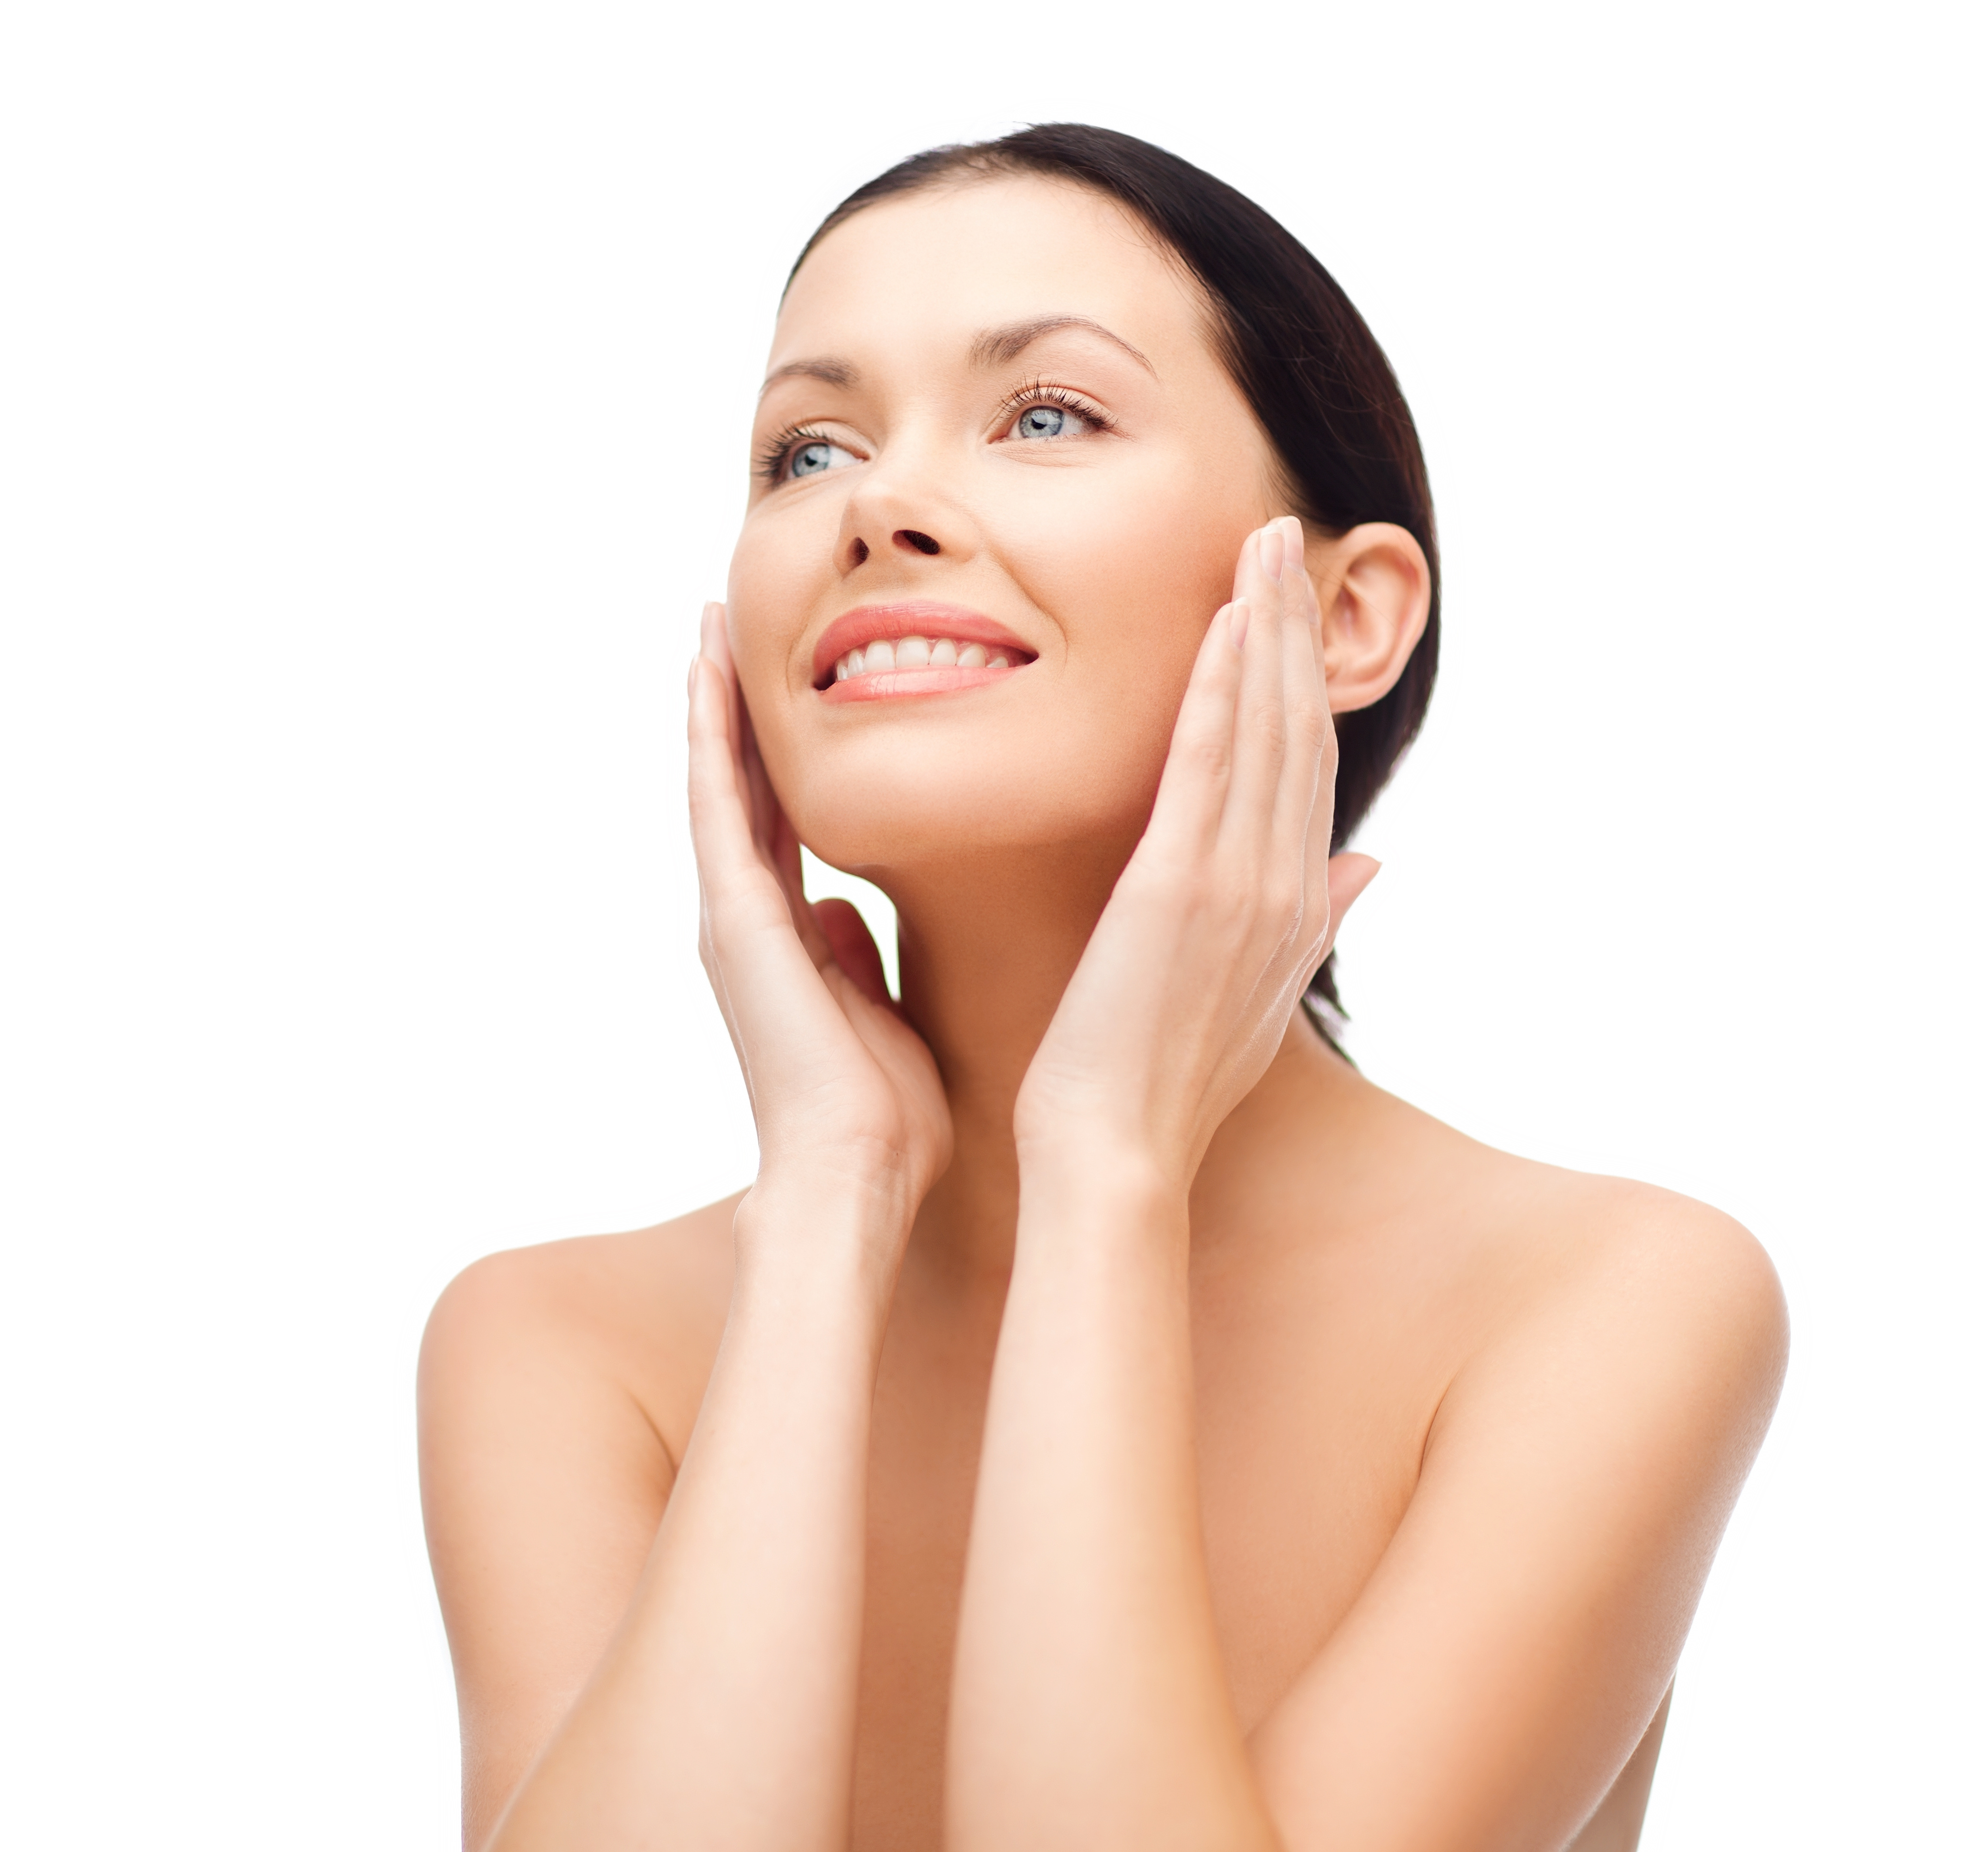 beauty, spa and health concept - smiling young woman